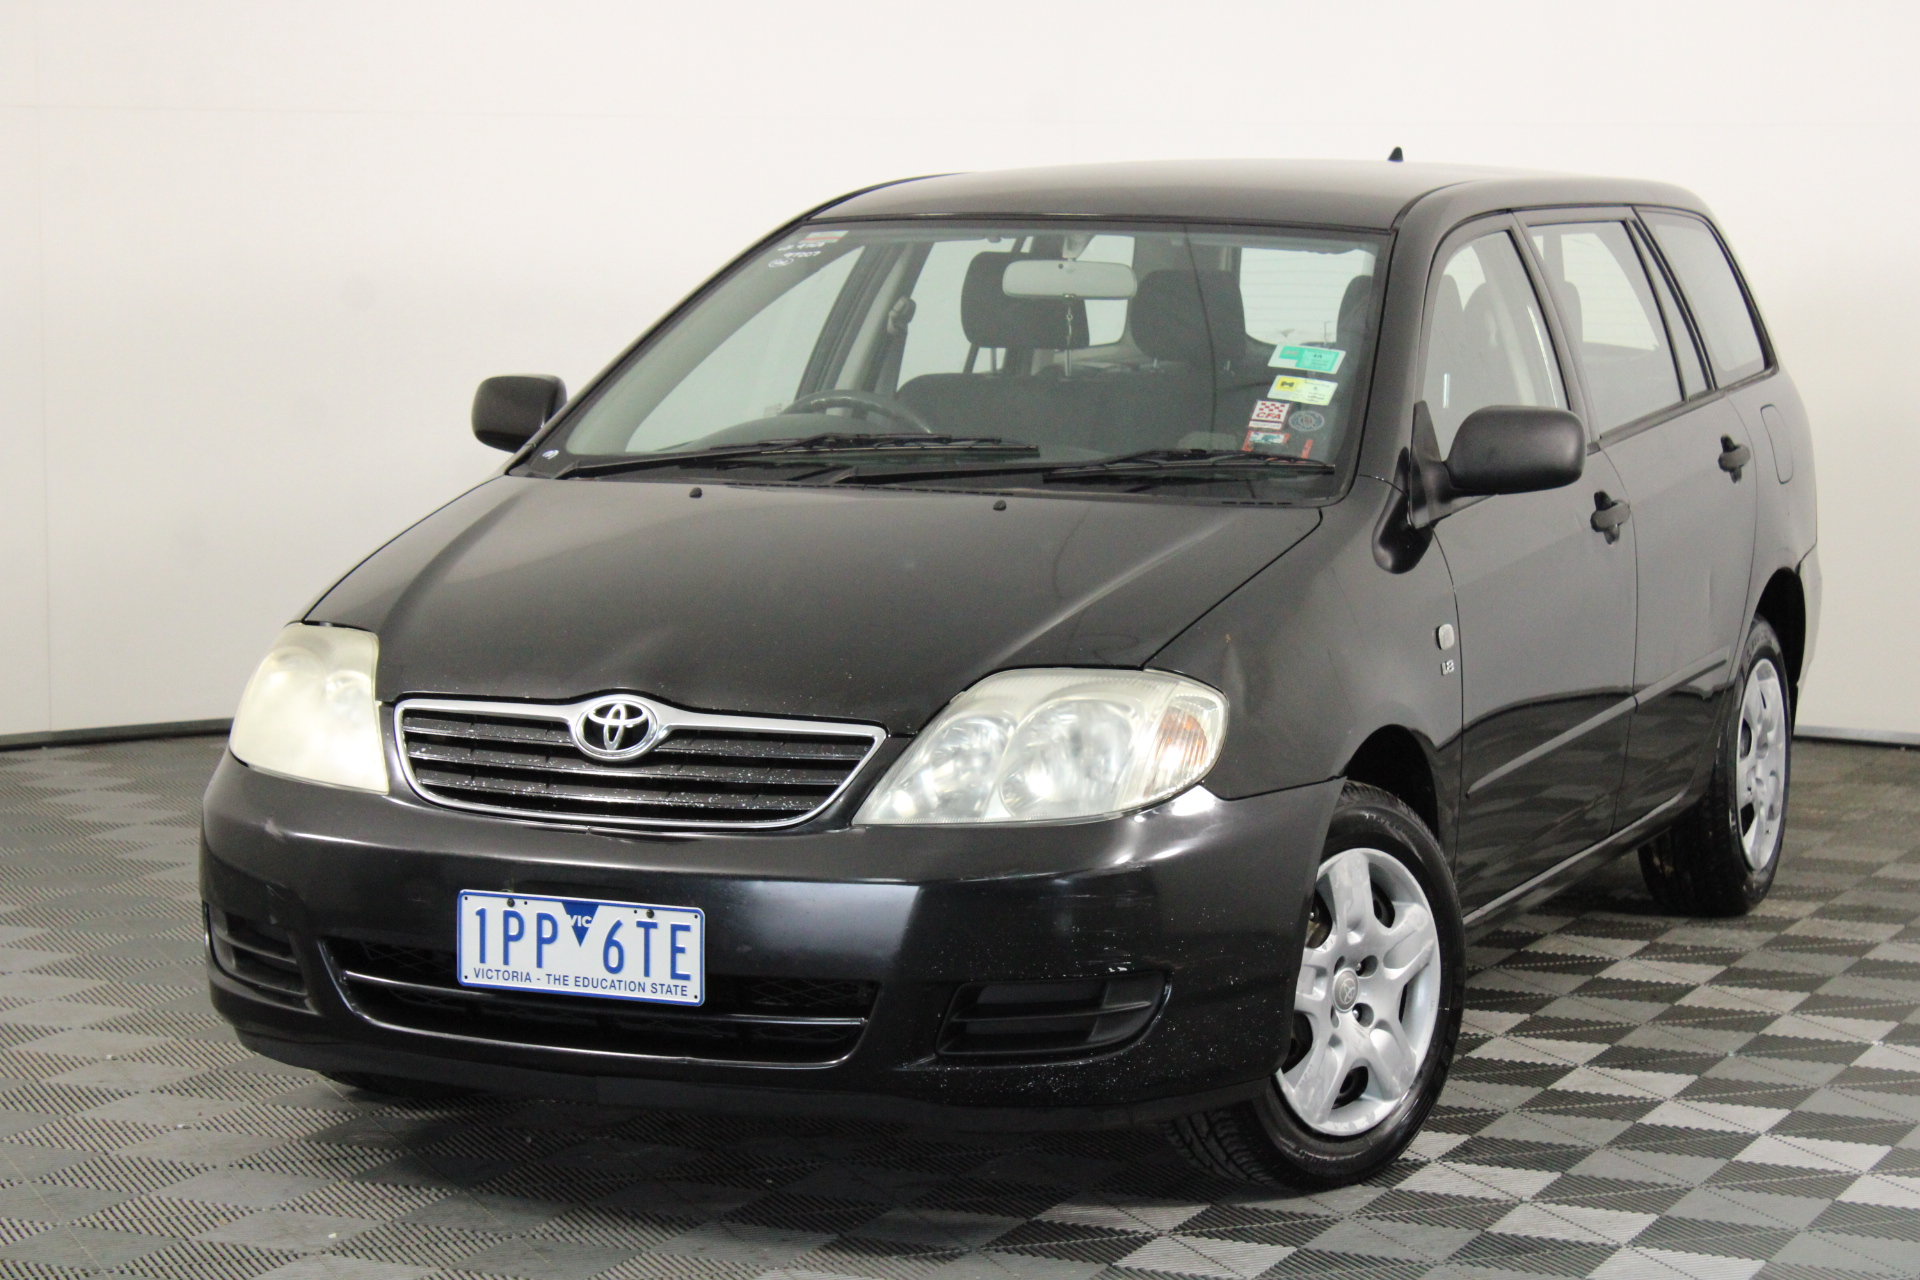 2004 Toyota Corolla Ascent ZZE122R Automatic Wagon